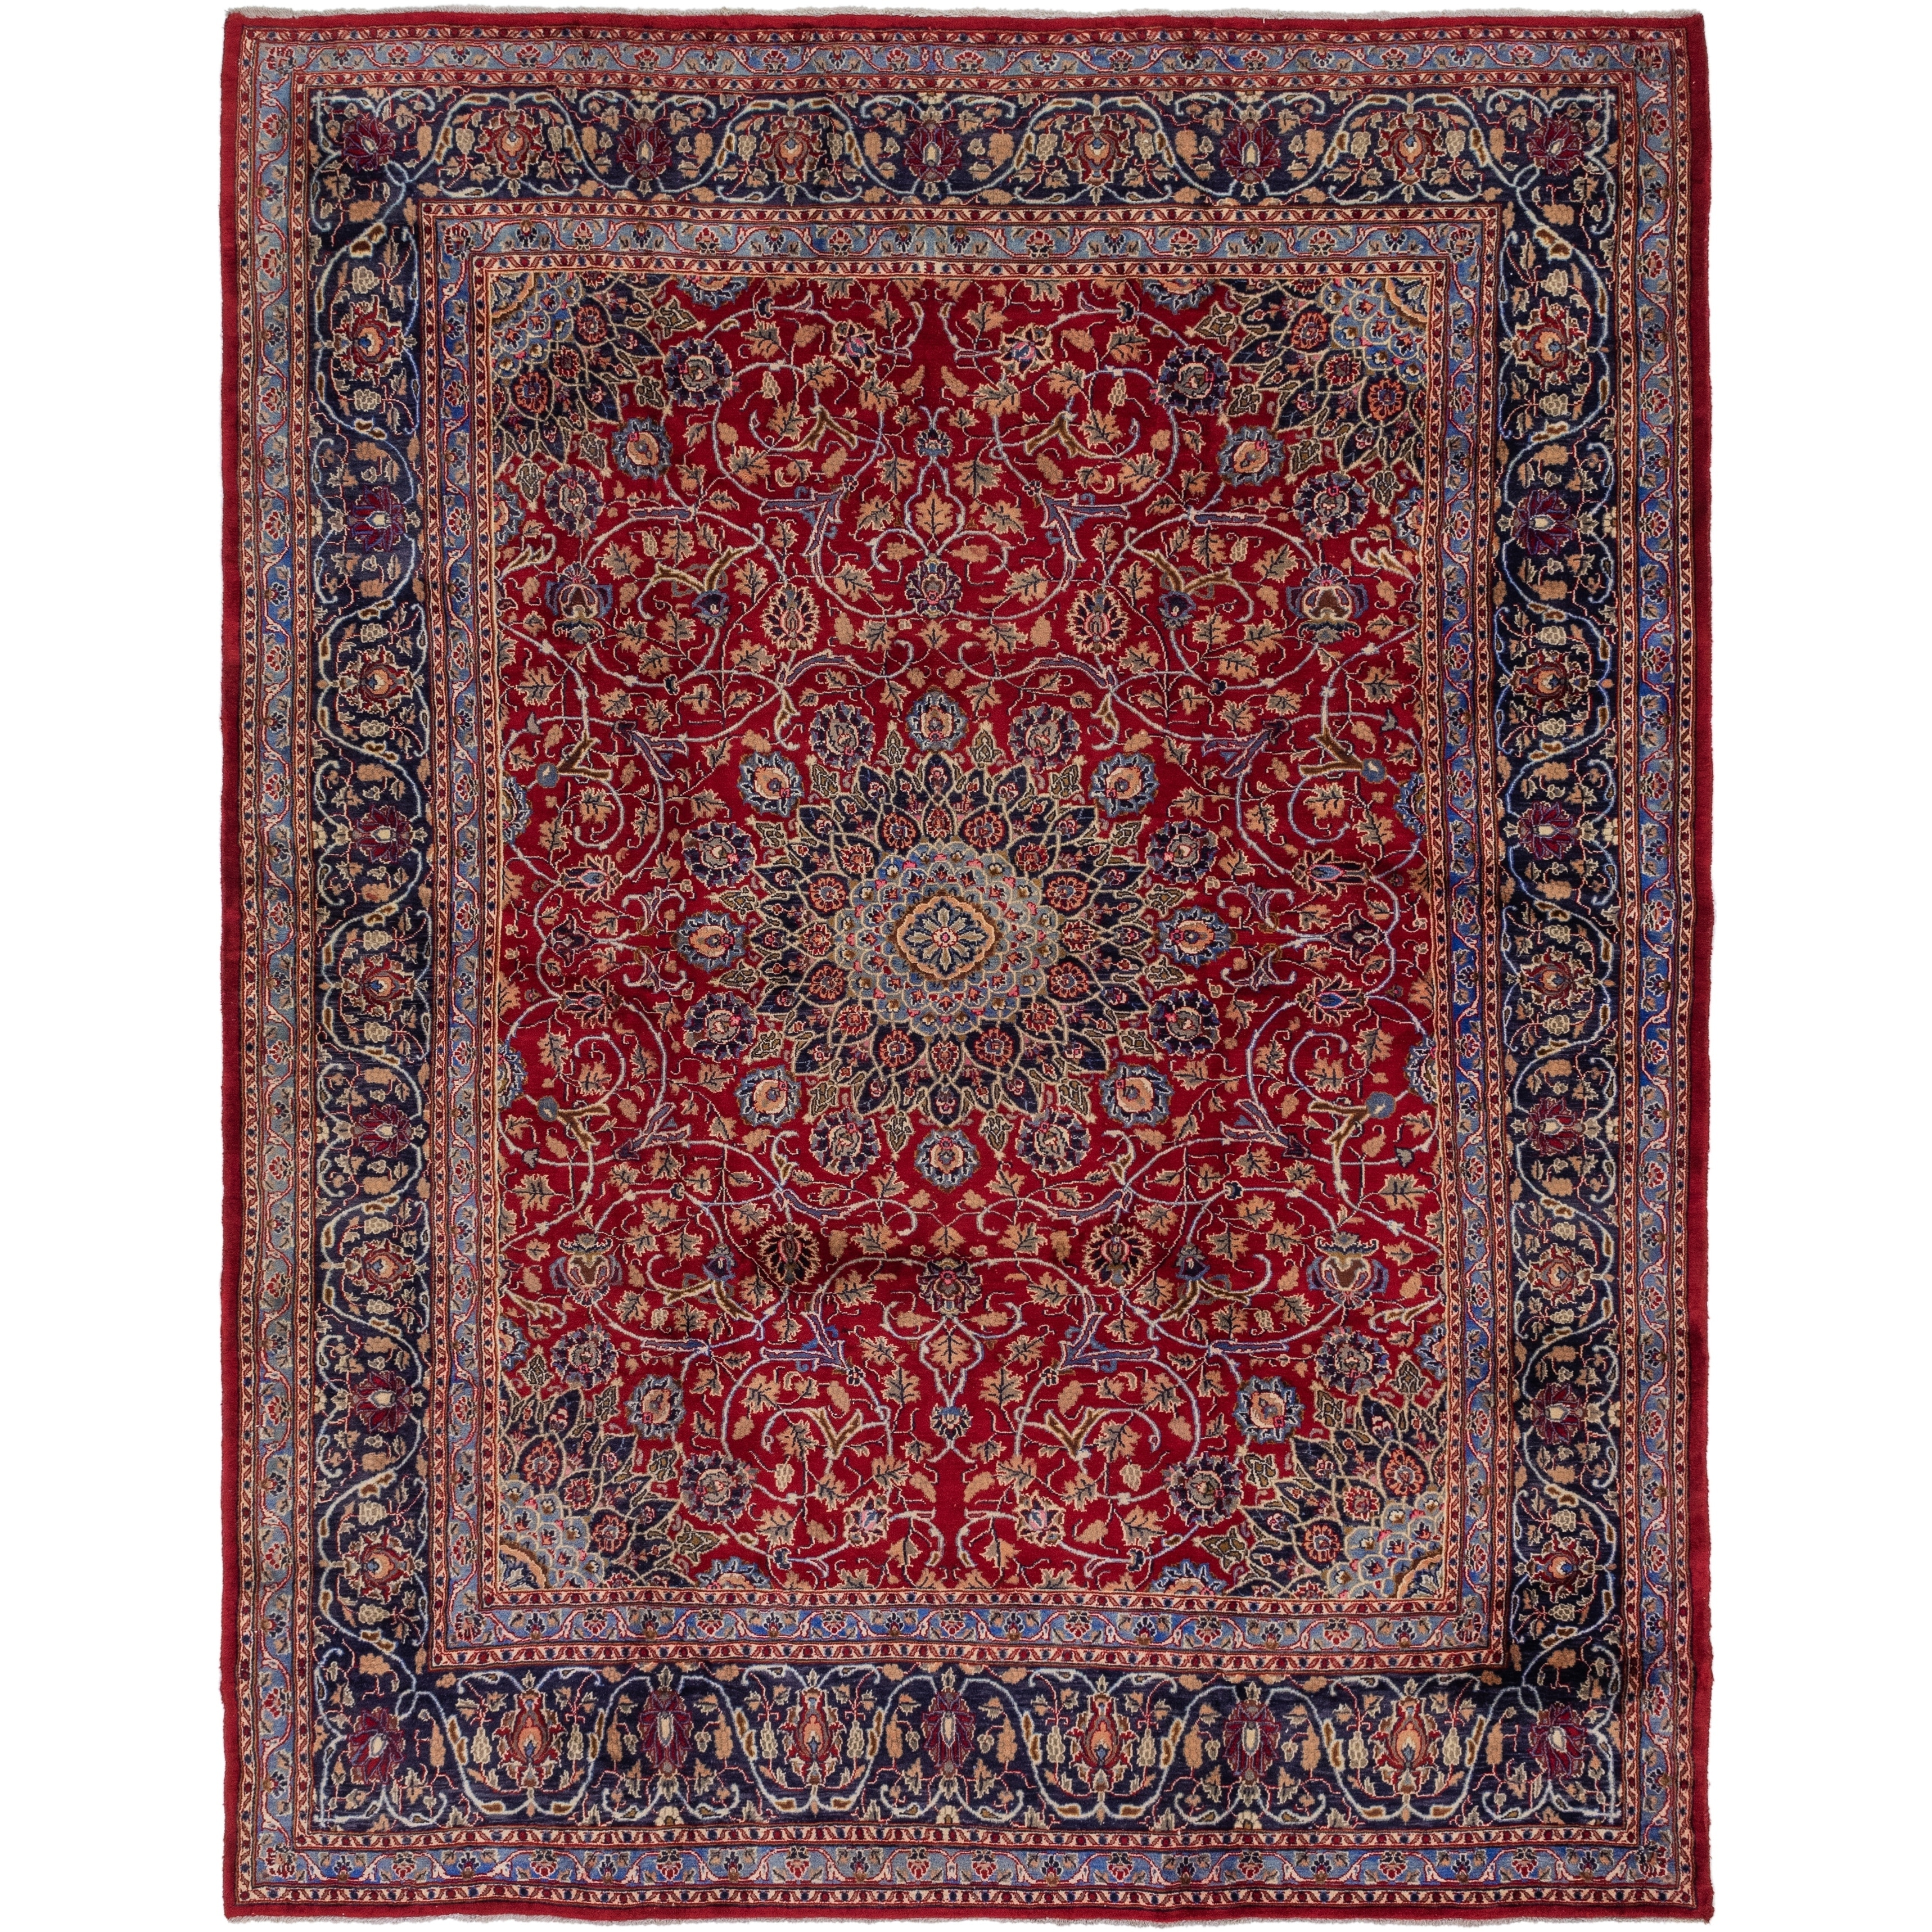 Hand Knotted Kashmar Semi Antique Wool Area Rug - 9 10 x 12 9 (Red - 9 10 x 12 9)